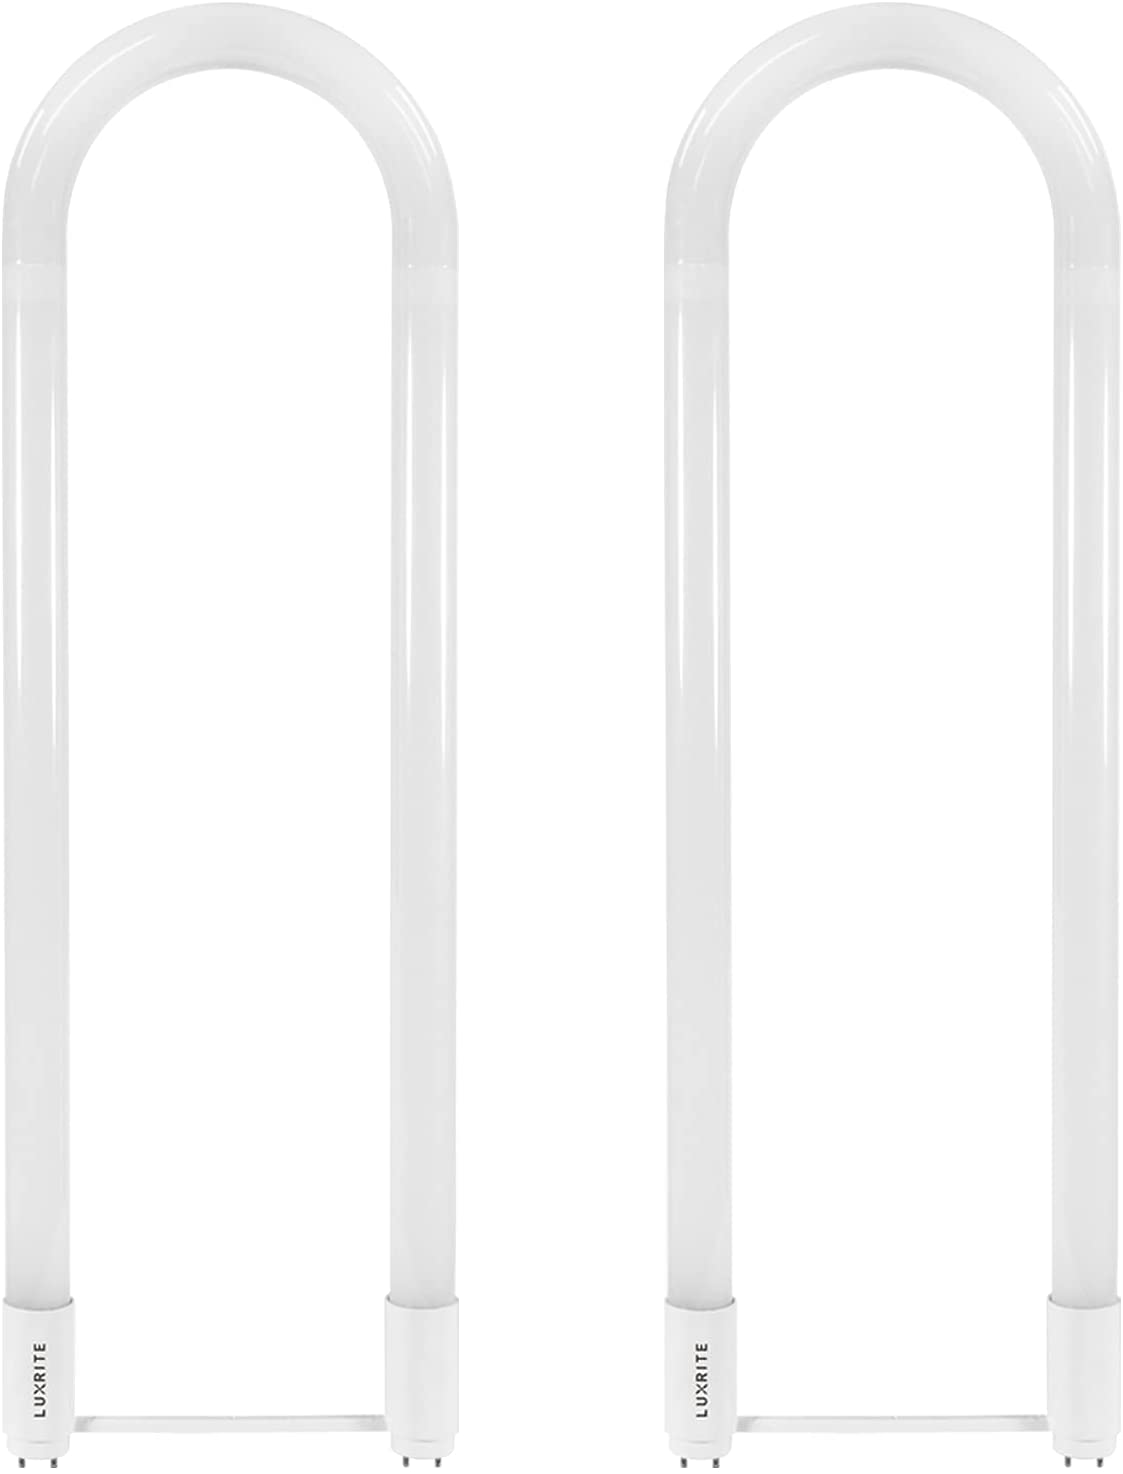 Luxrite U Bend LED Tube Light, T8 T12, 18W (32W Equivalent), 5000K Bright White, 2200 Lumens, Fluorescent Light Tube Replacement, Direct or Ballast Bypass, DLC and ETL Listed, G13 Base (2 Pack)